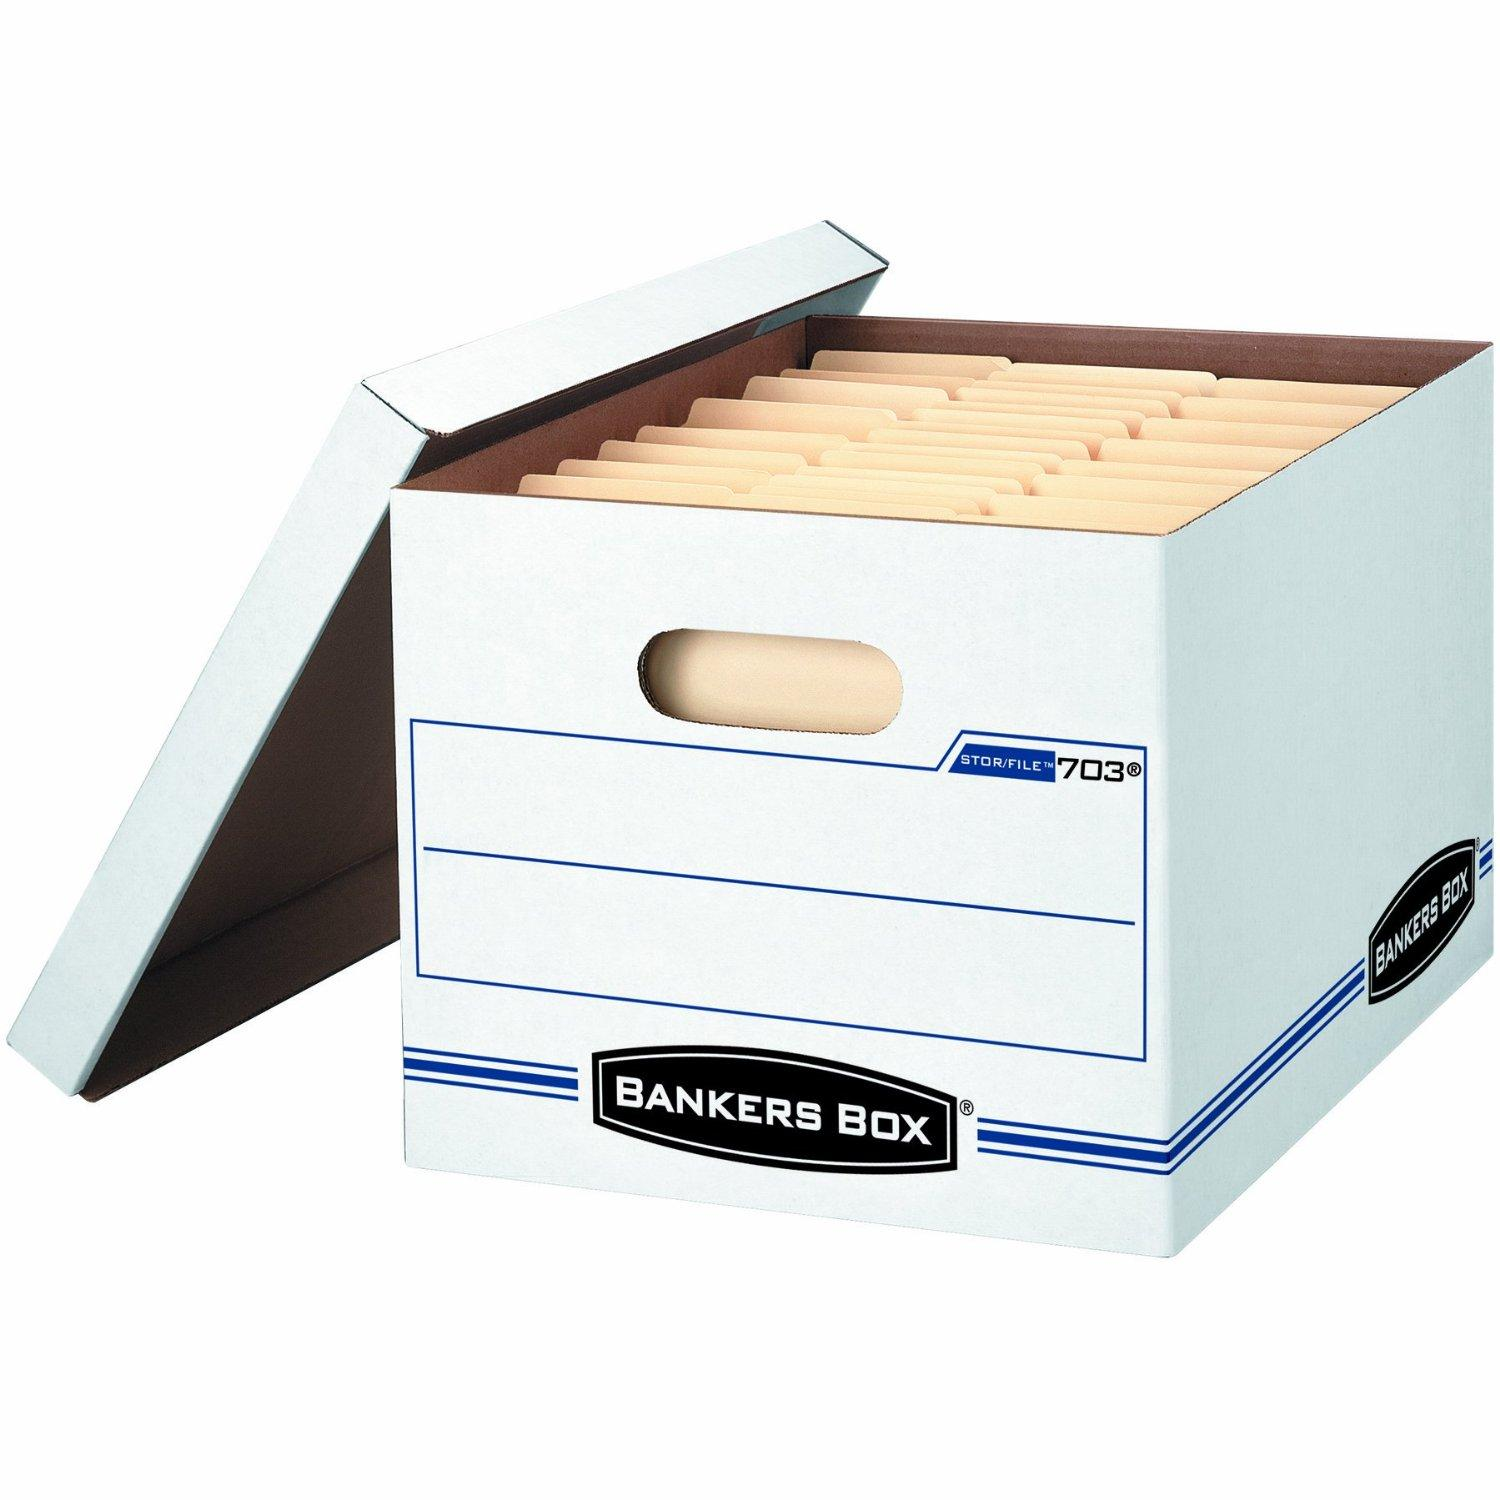 $19.99 Bankers Box Stor/File Storage Box with Lift-Off Lid, Letter/Legal, 12 x 10 x 15 Inches